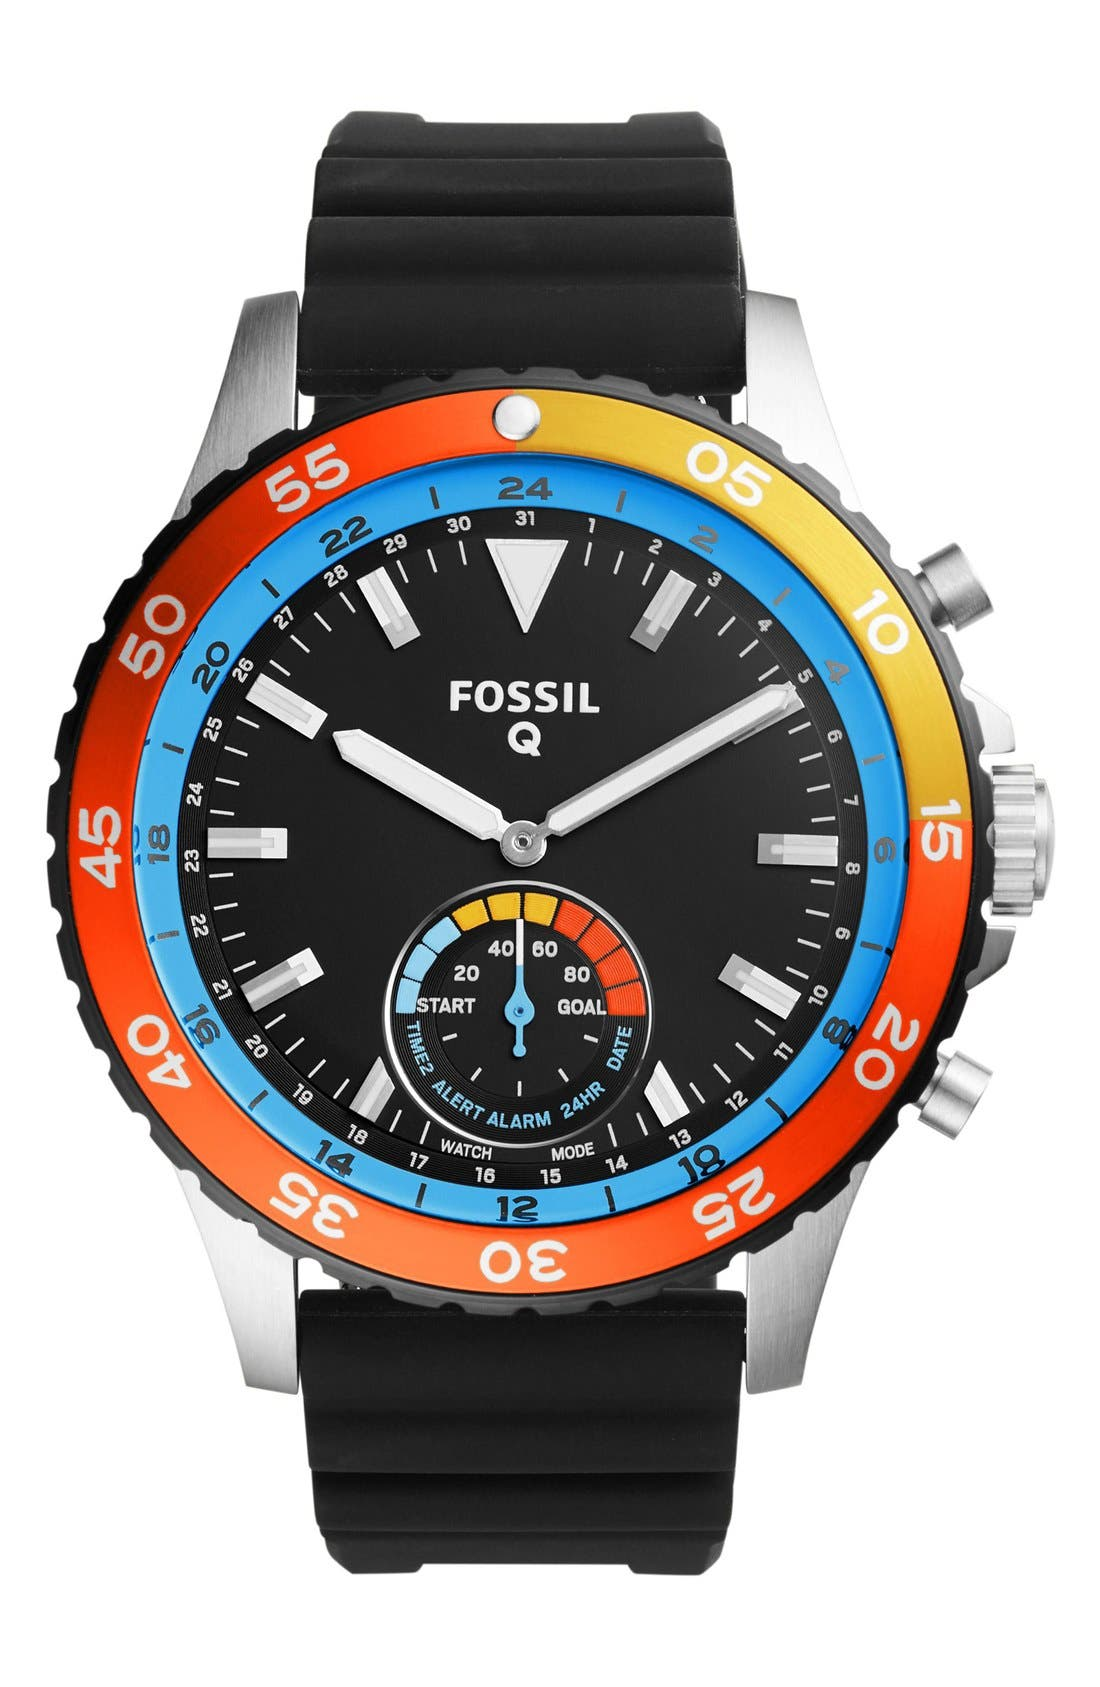 Fossil Q Crewmaster Silicone Strap Smart Watch, 46mm